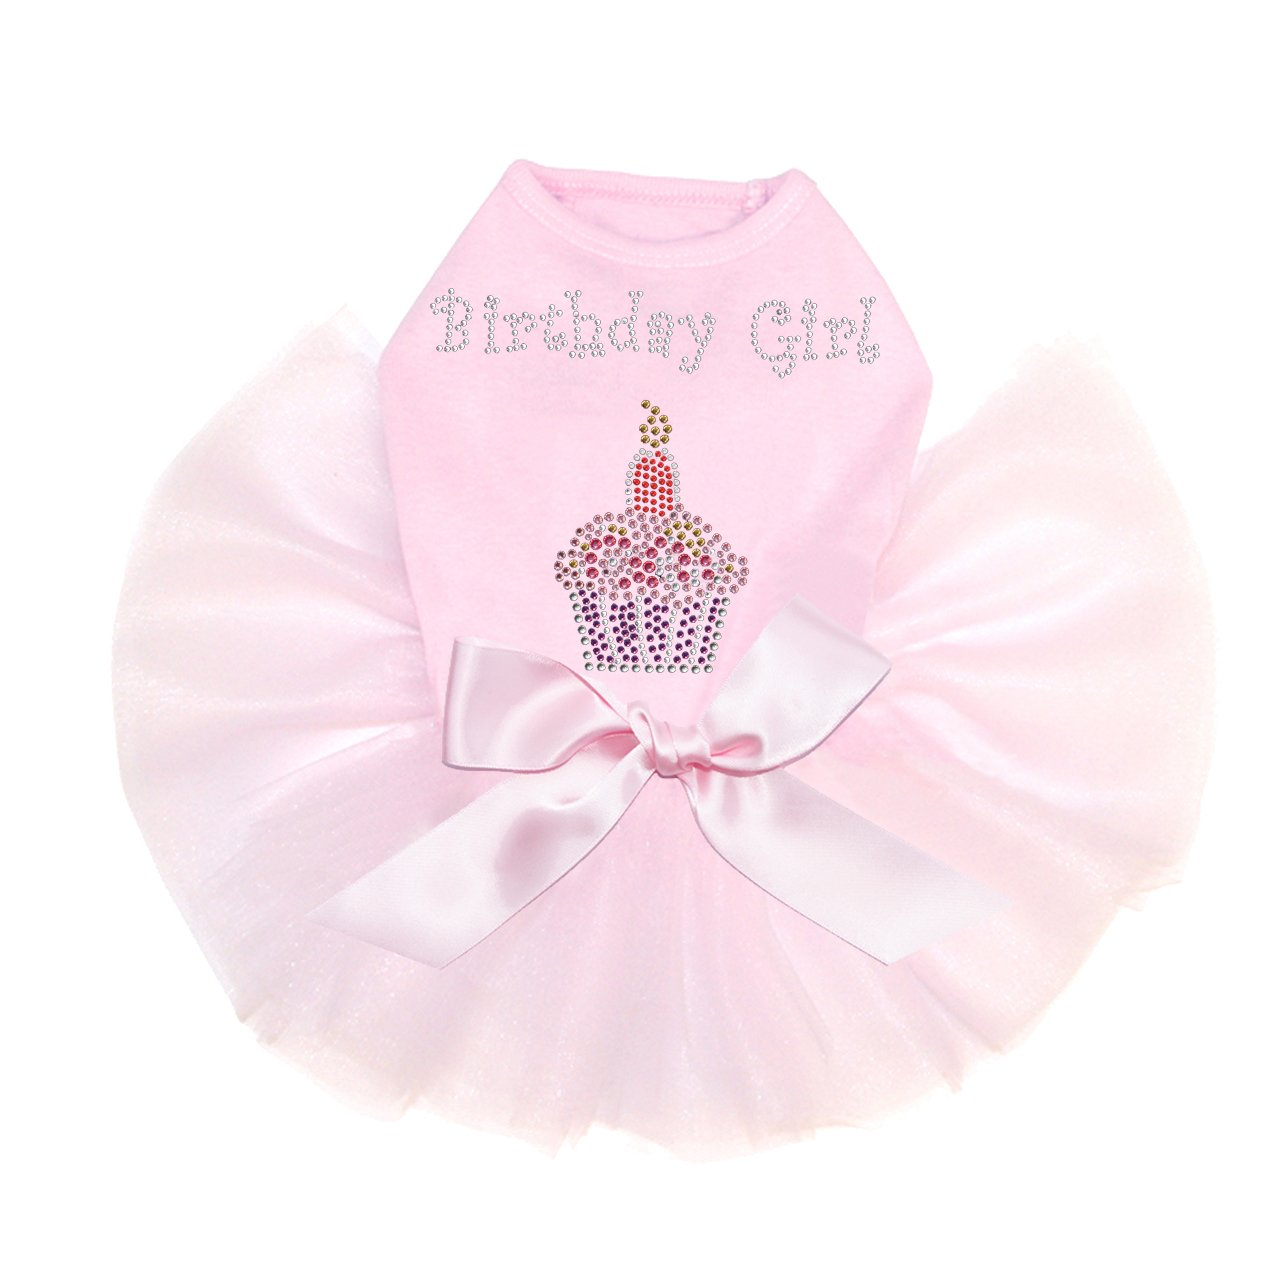 Birthday Girl - Dog Tutu Dress, M Pink